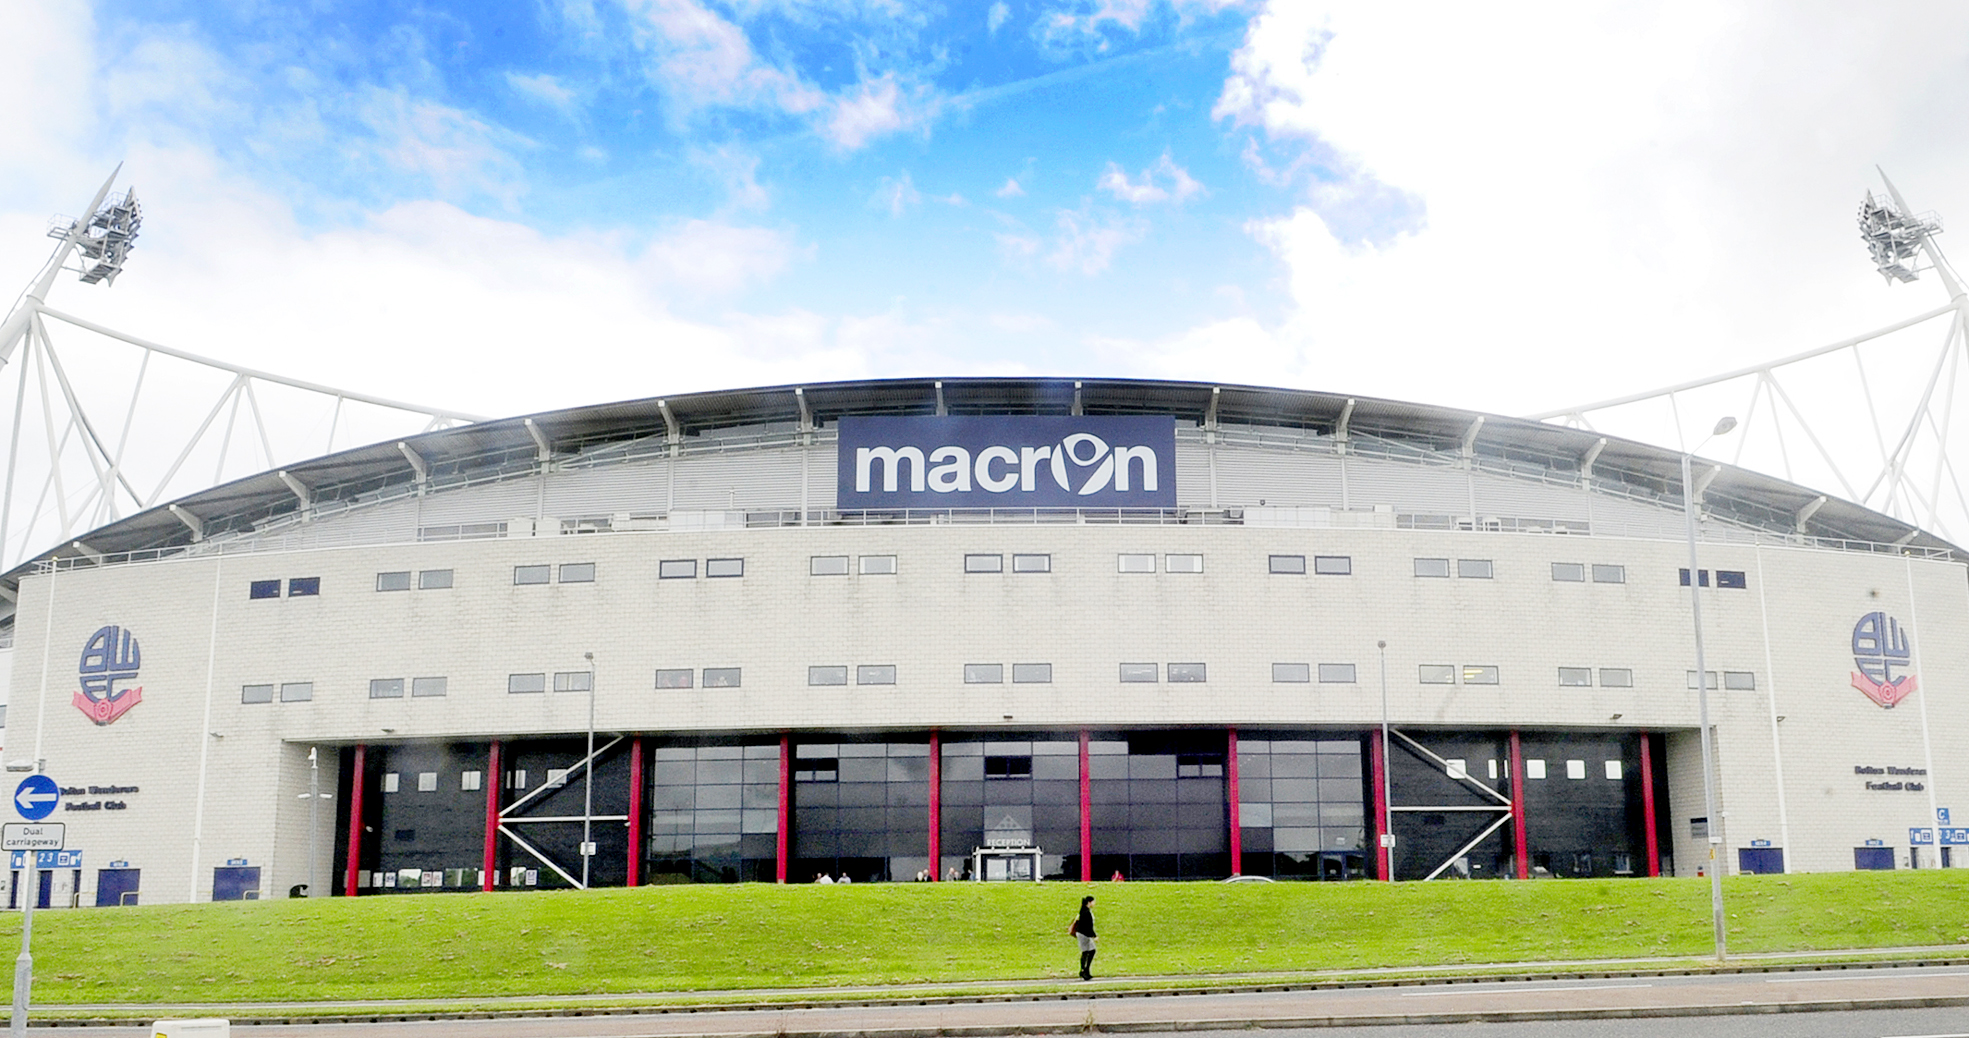 The Macron Stadium, where a teenager allegedly racially abused a Bury player last night